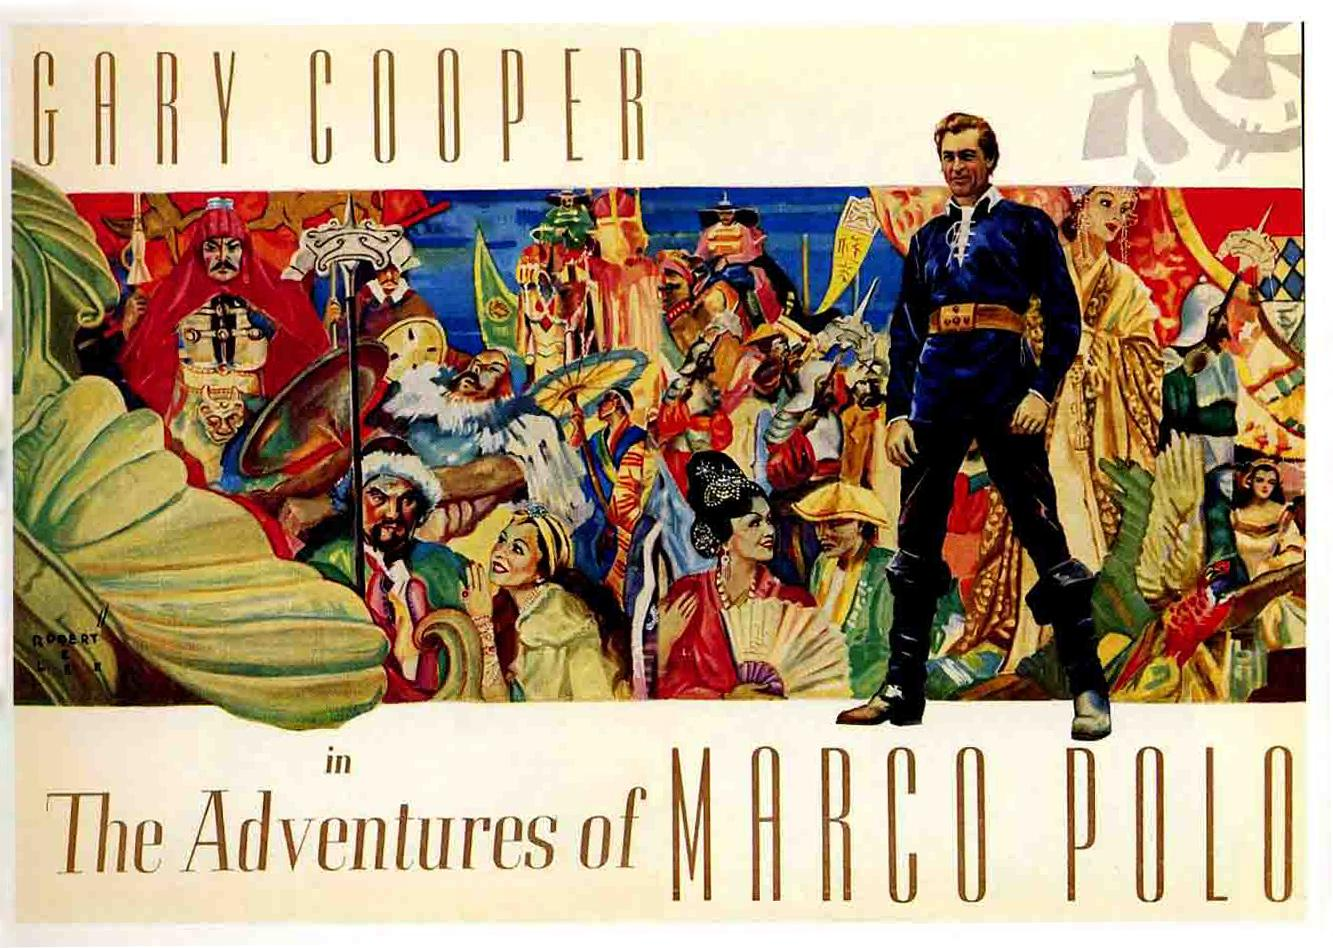 the adventures of marco polo Gary cooper is the most unlikely marco polo, but that didn't stop producer samuel goldwyn from casting him in this would-be tongue-in-cheek spectacular trouble is, it's not funny enough, nor at all spectacular, and, with cheesy art direction that cries out for technicolor, the end result is both silly and dull also surprisingly.